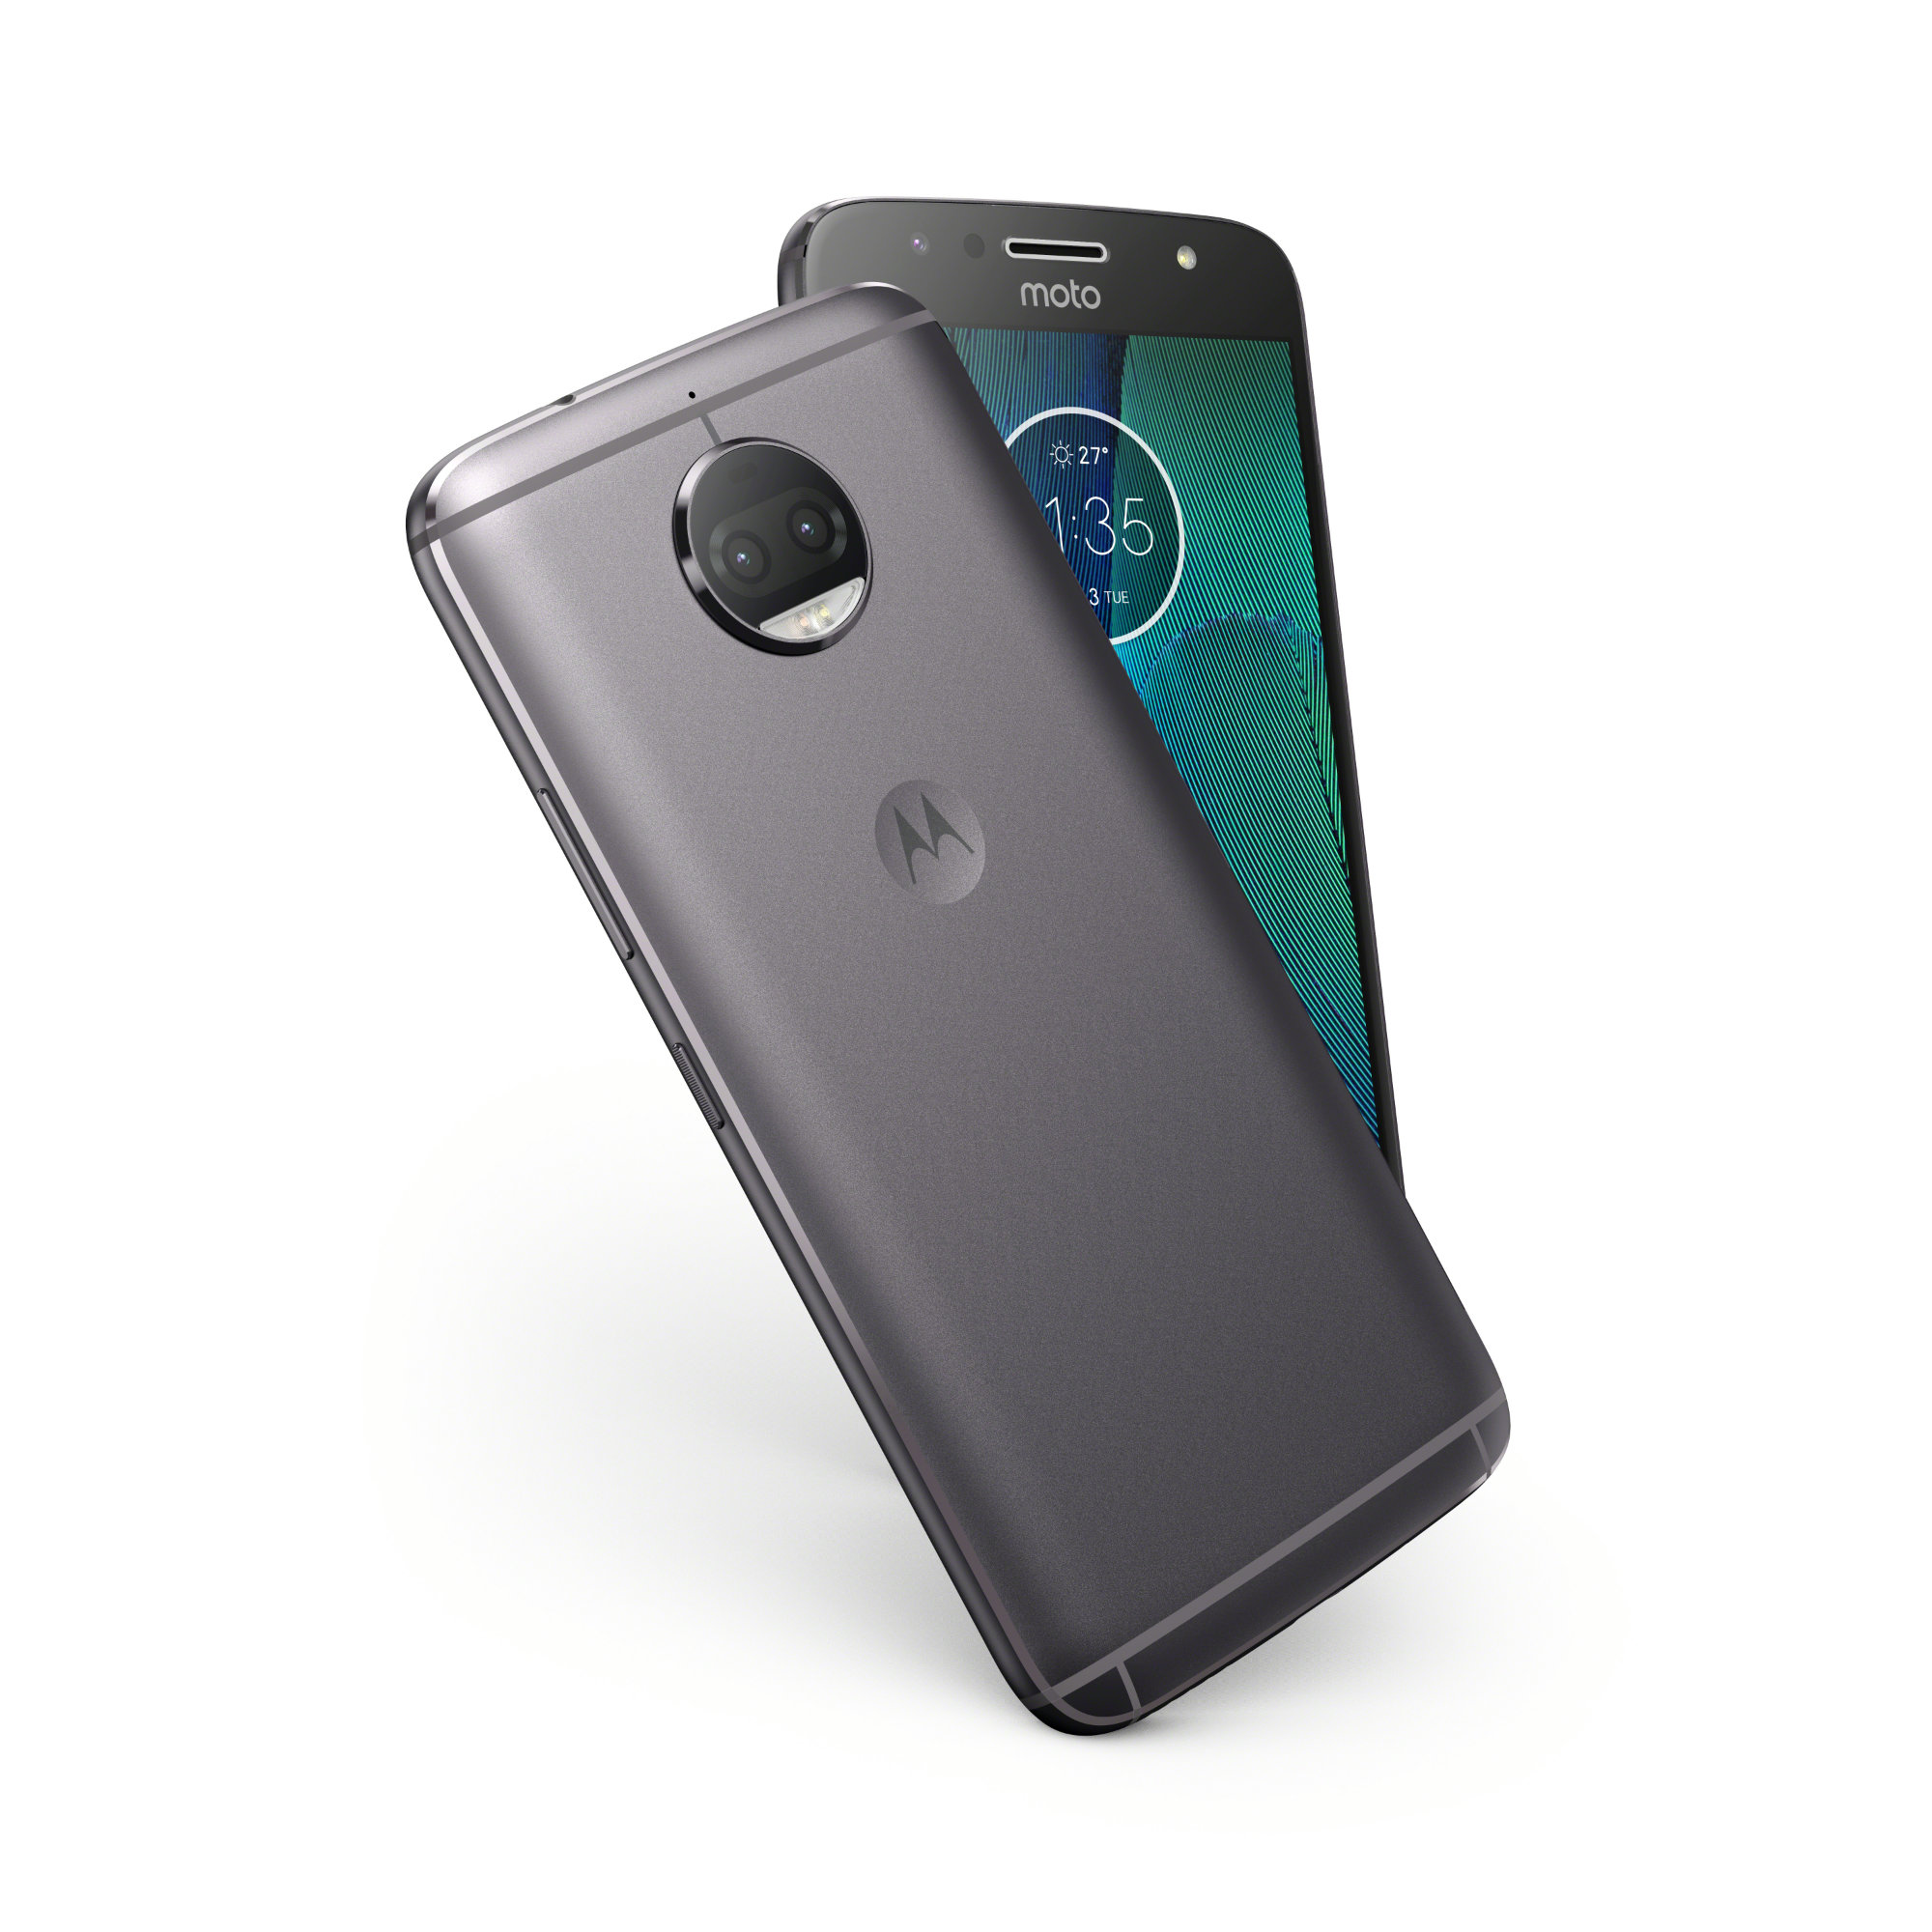 Moto G5S Plus press images - Moto G5s Plus review